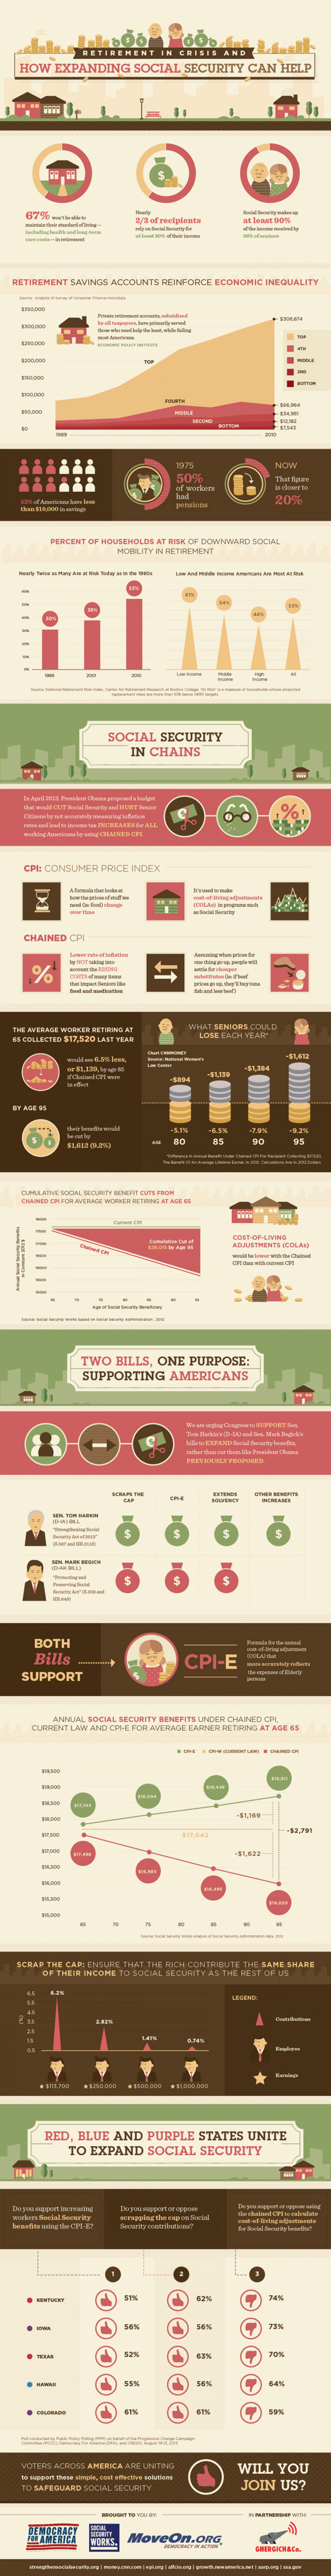 Retirement in Crisis and how Expanding Social Security can Help Infographic